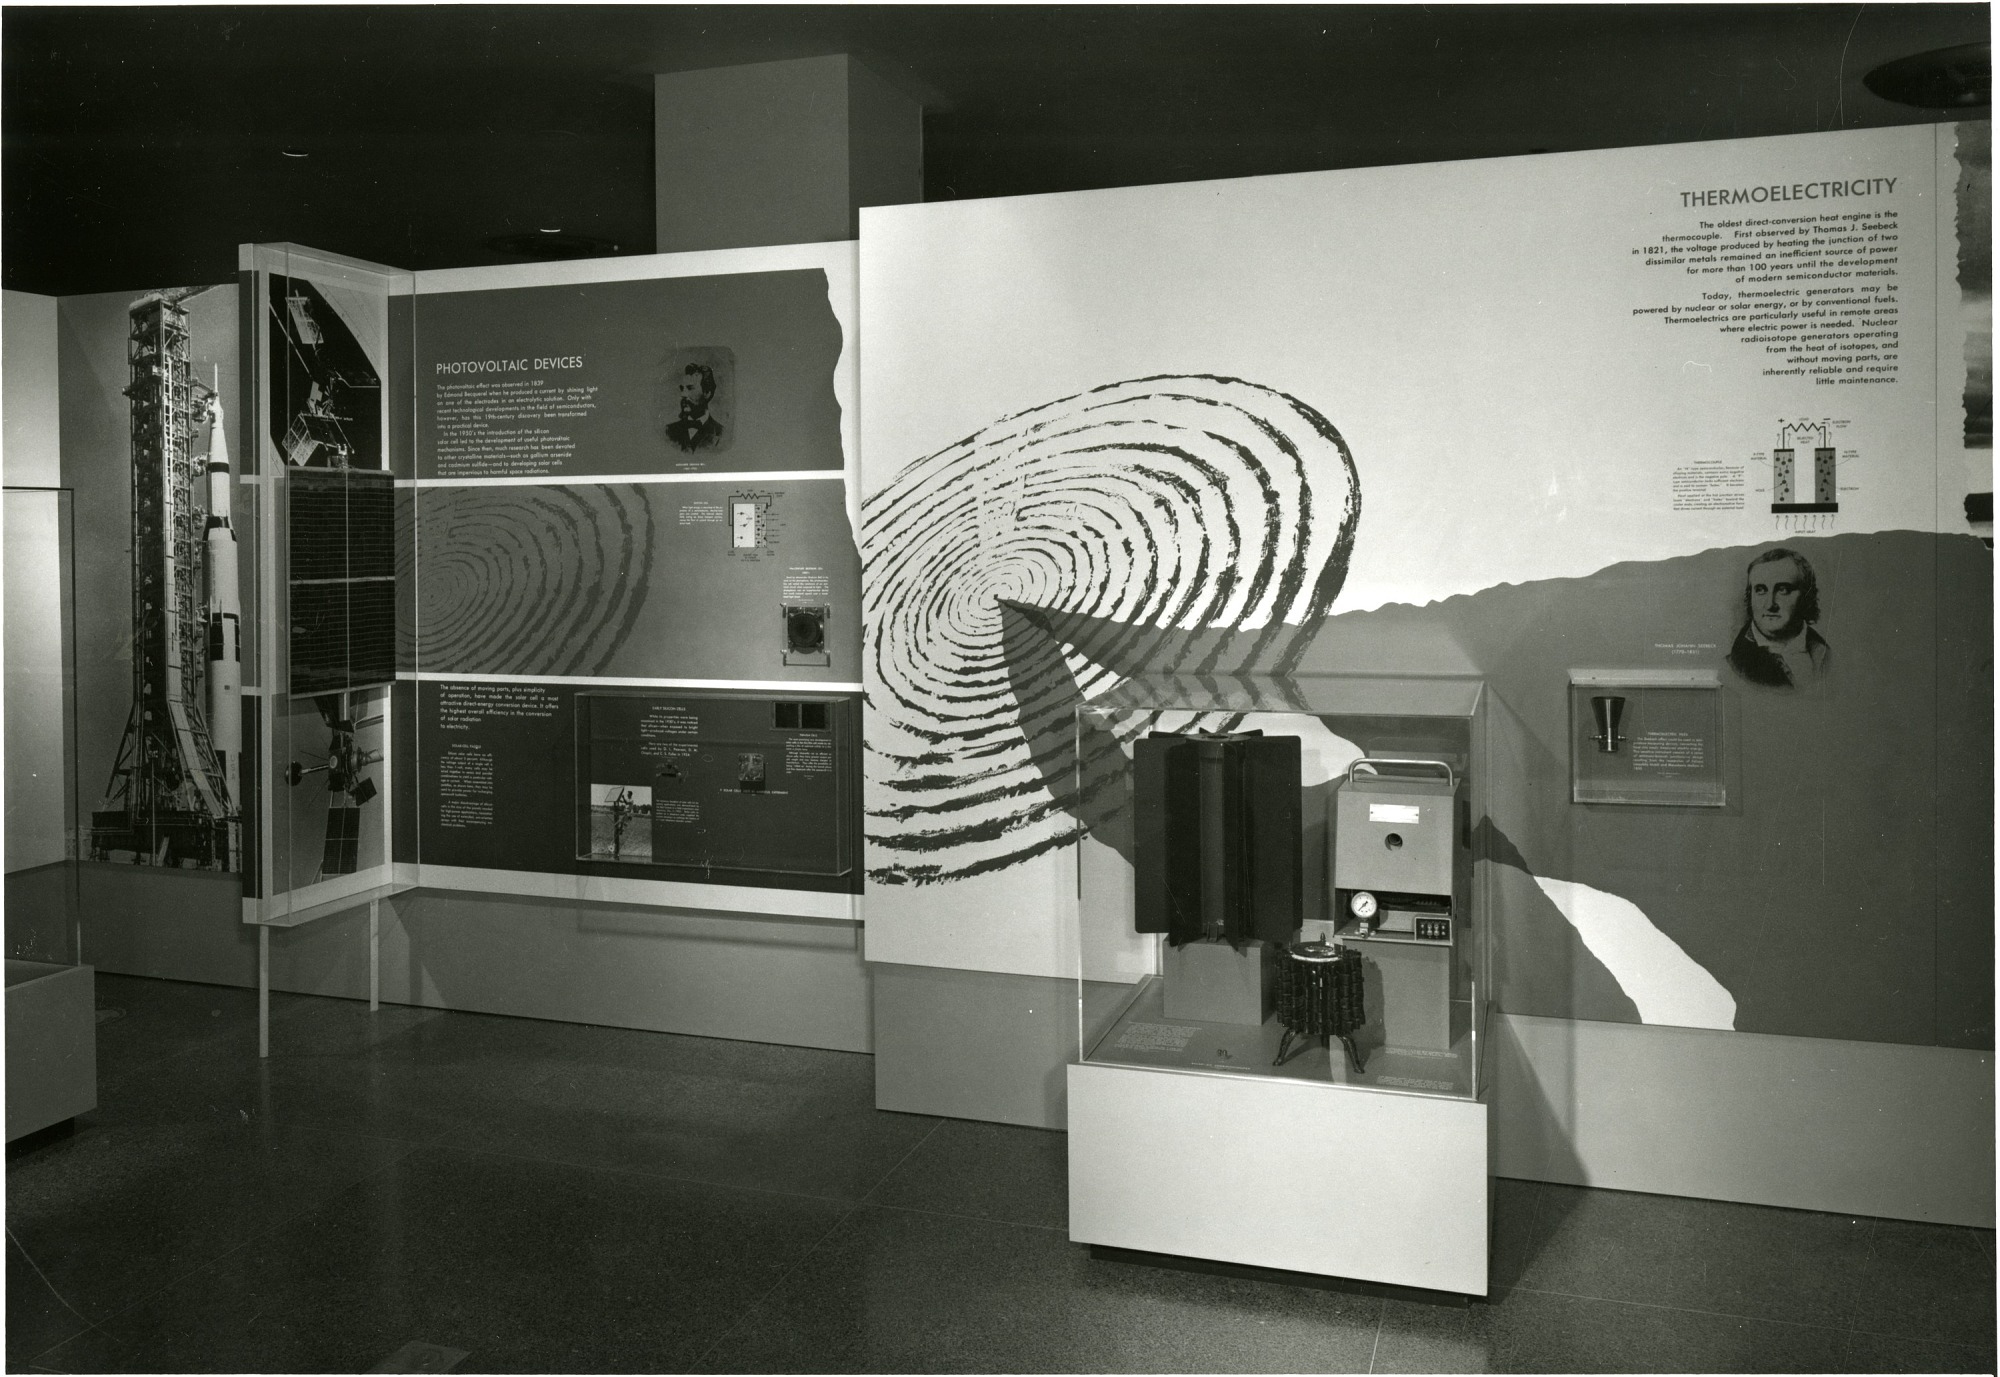 Museum of History and Technology, Electricity Exhibit